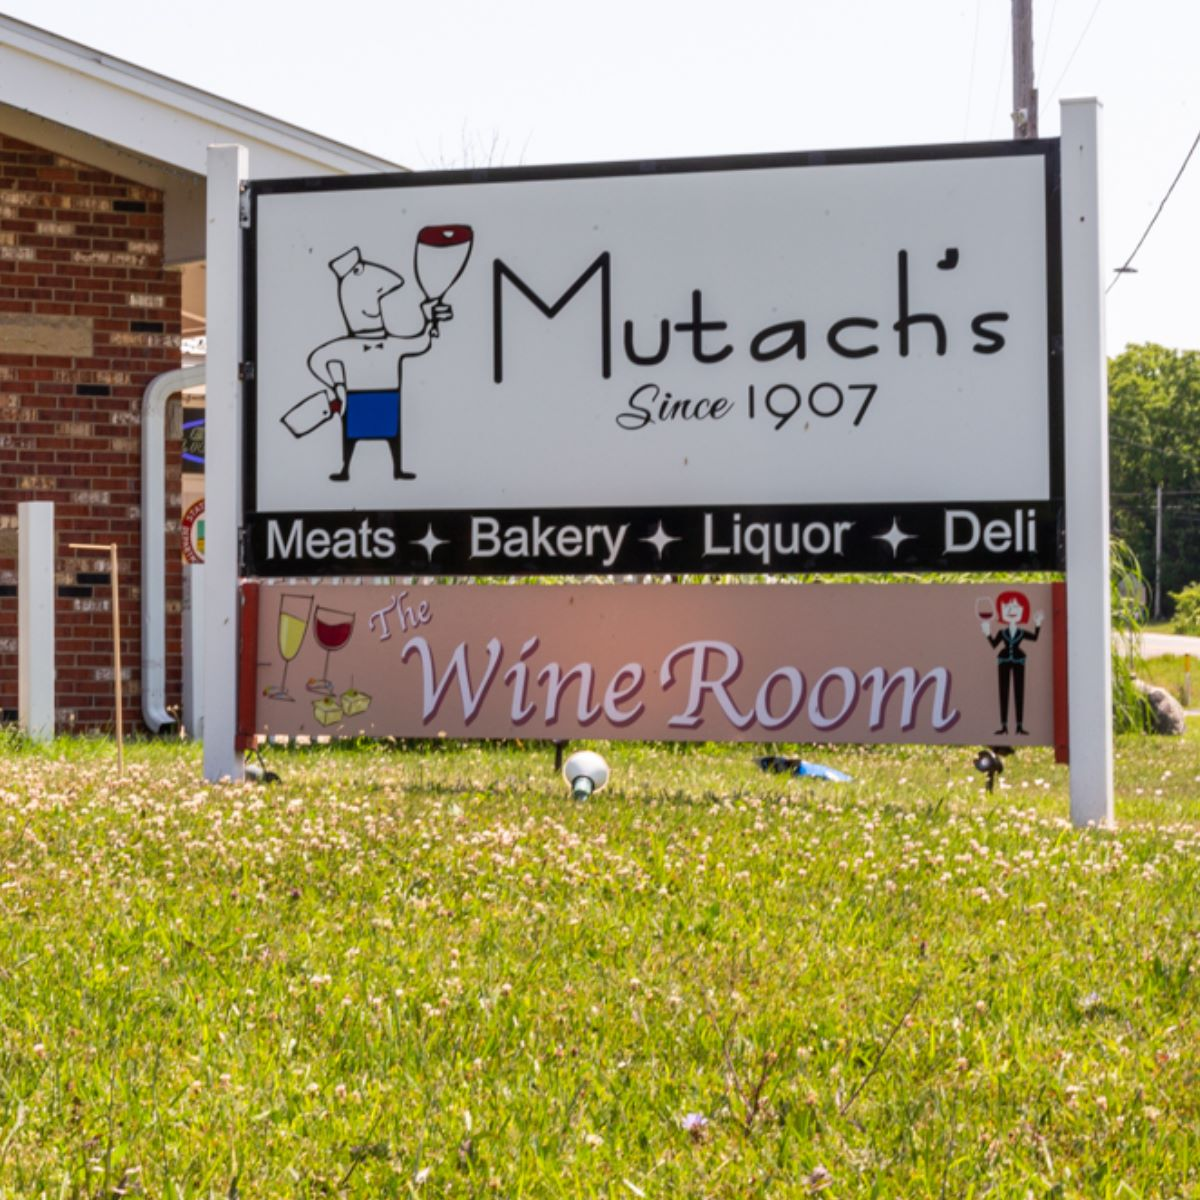 Mutach's Food Market & The Wine Room 8037 E Harbor Rd, Lakeside Marblehead